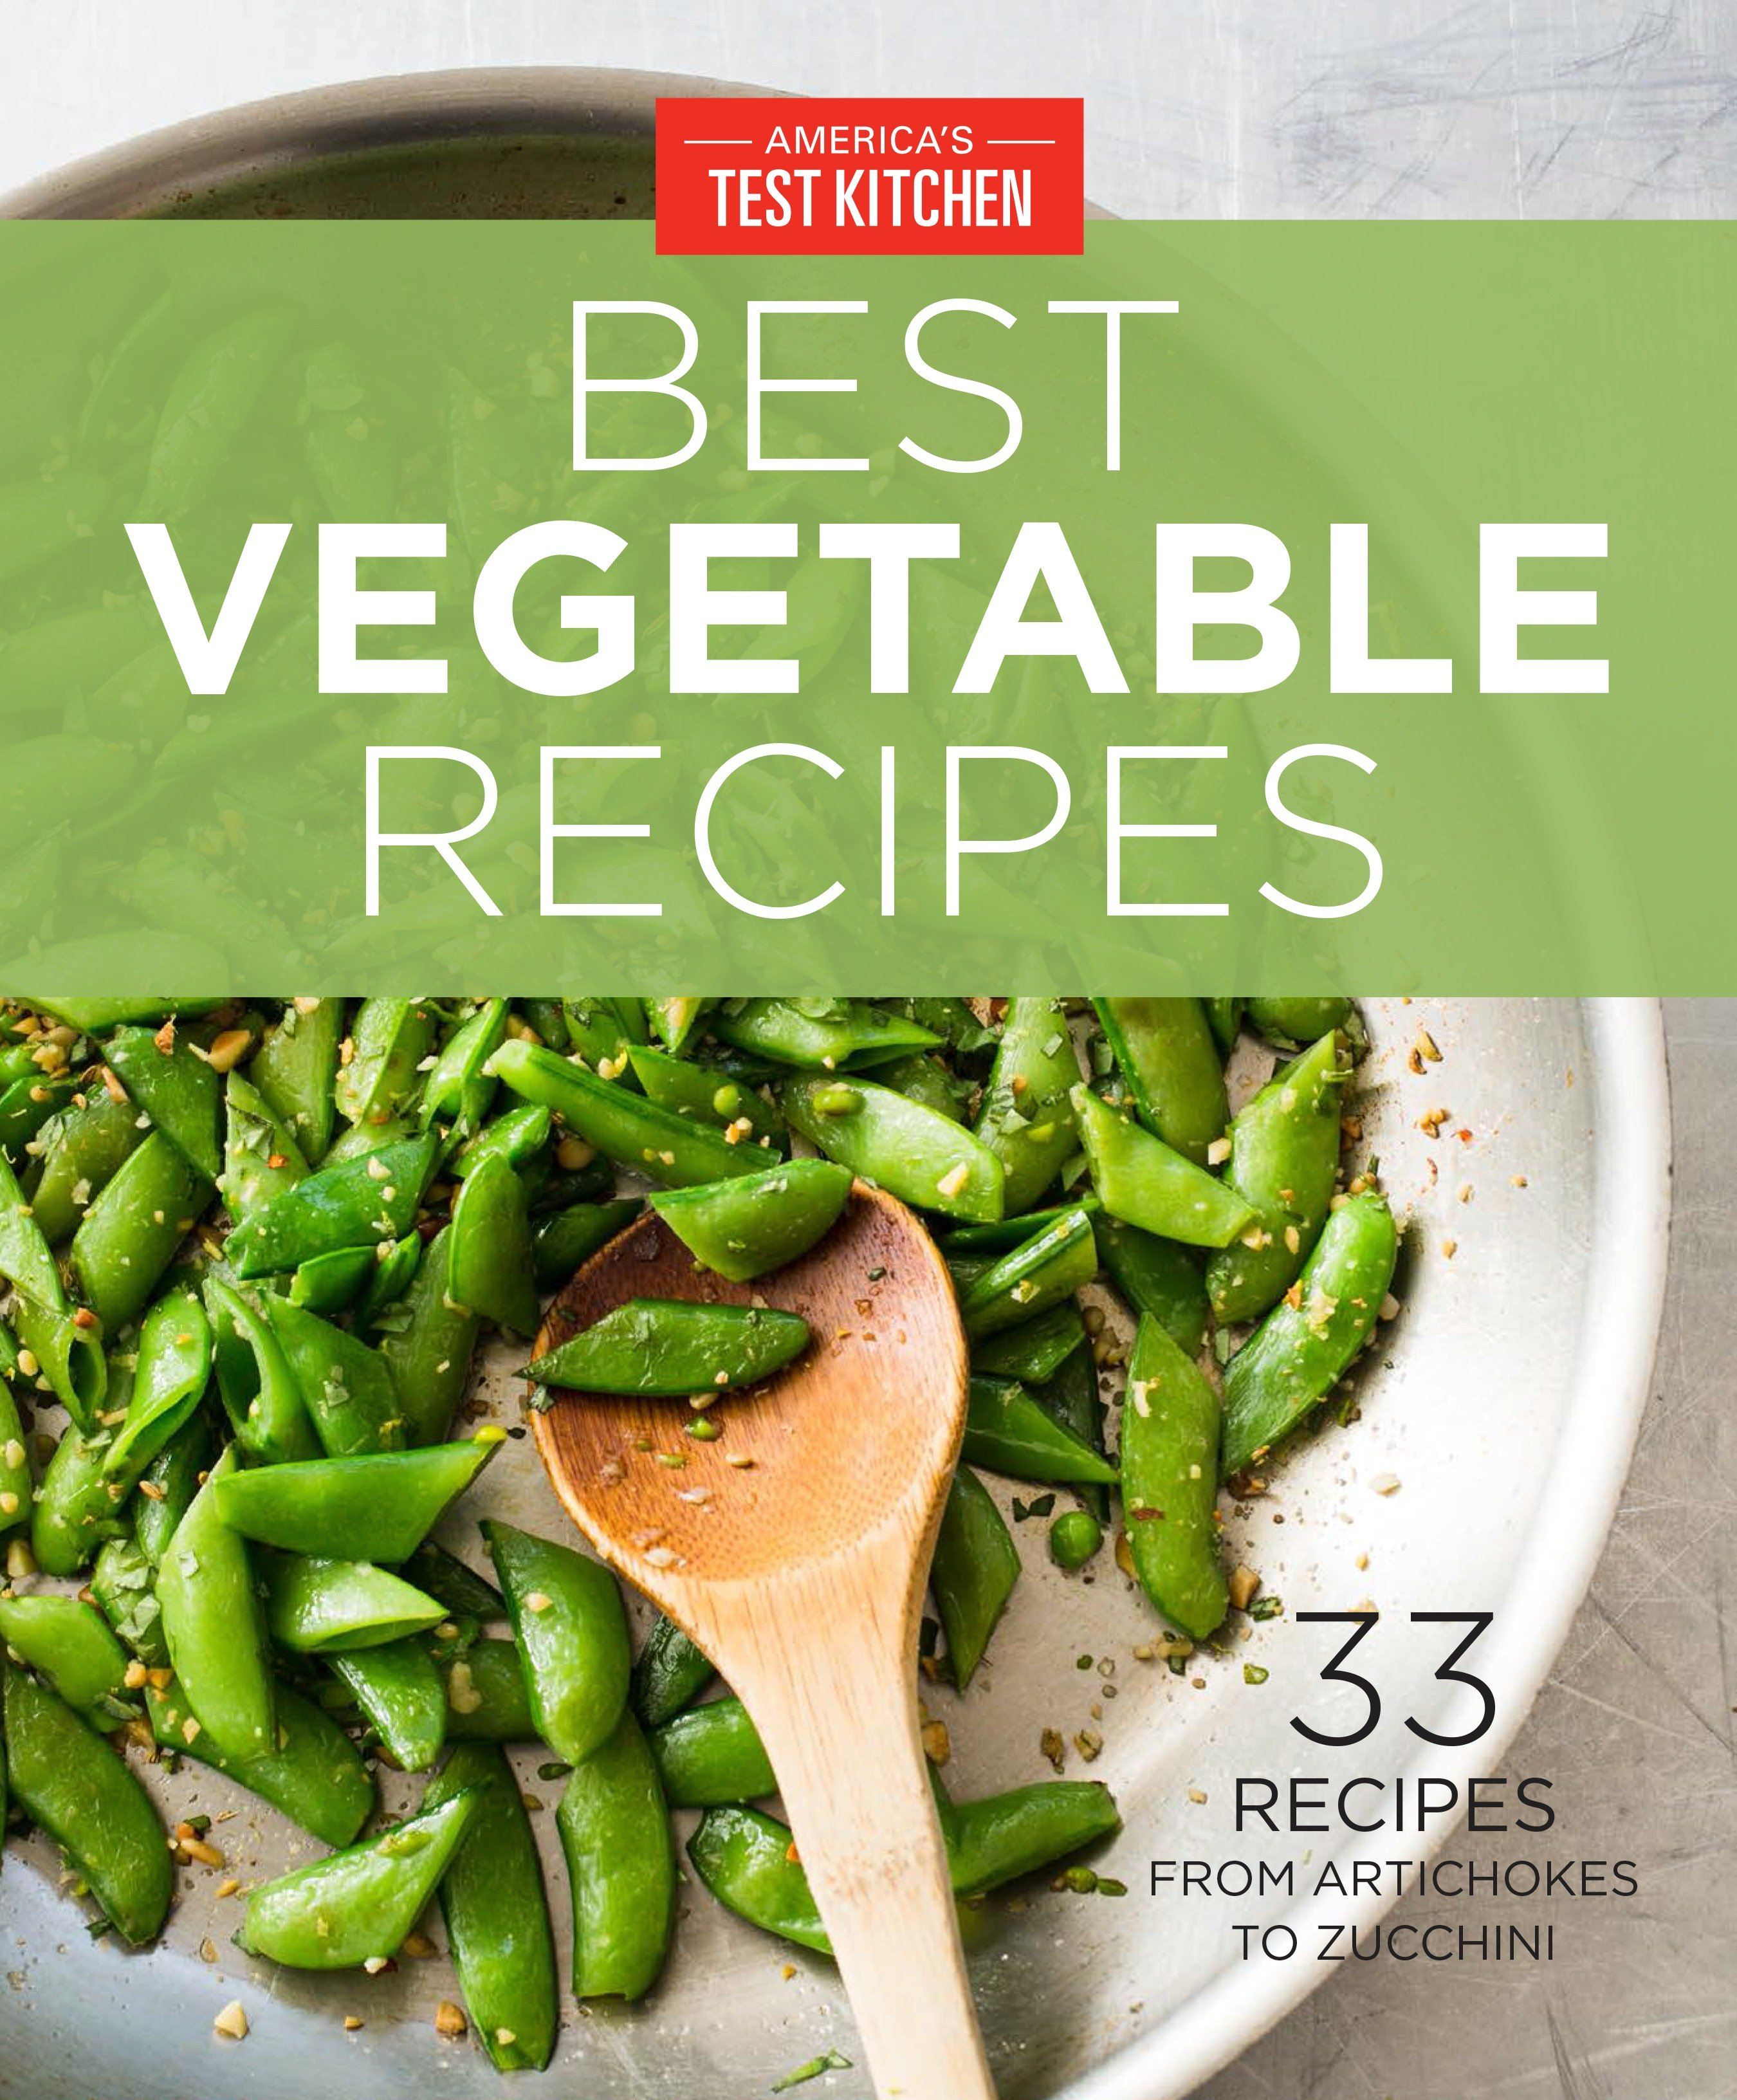 America's Test Kitchen Best Vegetable Recipes 33 Recipes from Artichokes to Zucchini